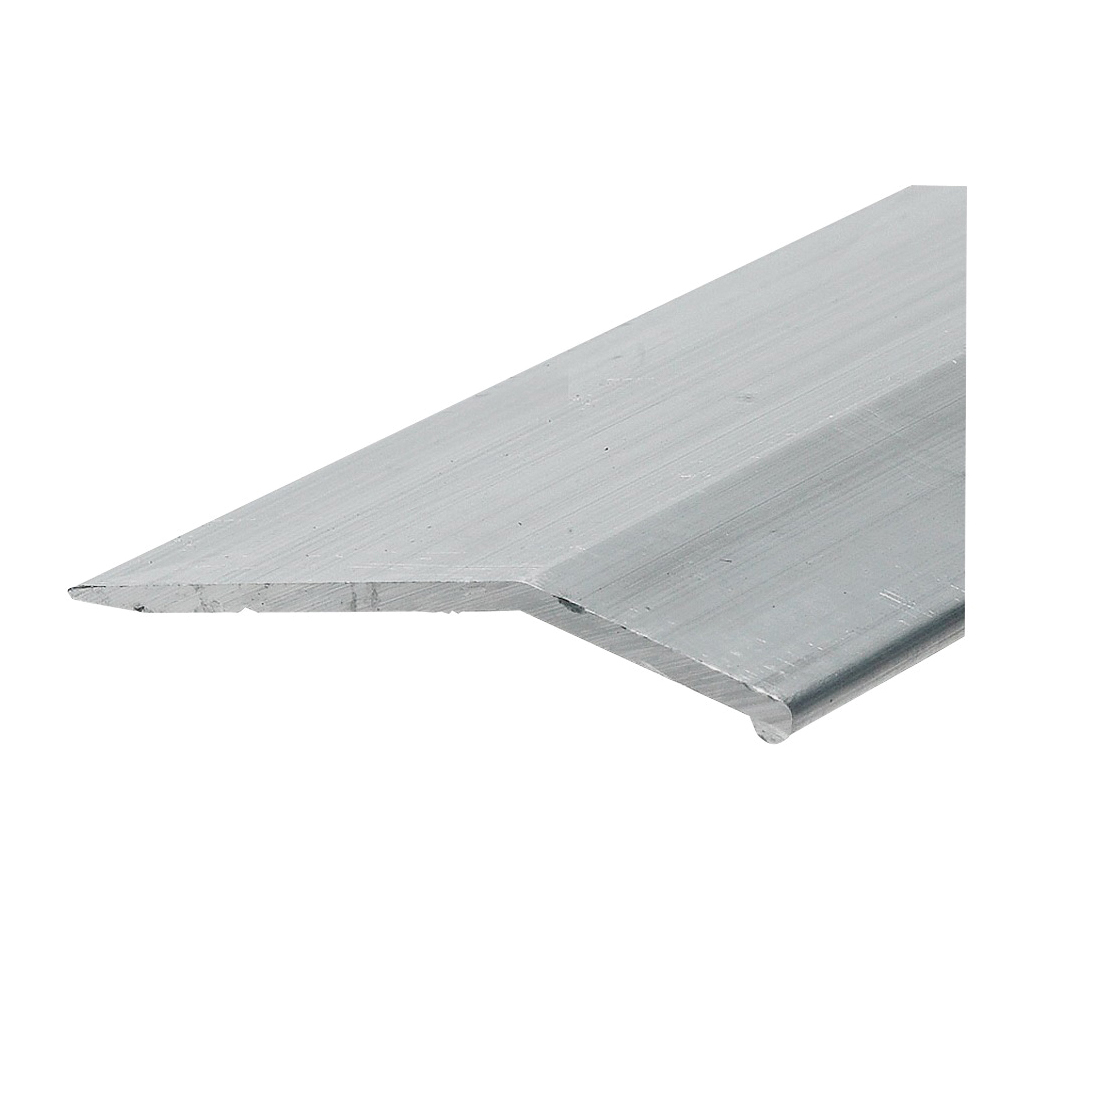 Picture of Frost King H591P/3 Carpet Bar, 3 ft L, 1-3/8 in W, Smooth Surface, Aluminum, Silver